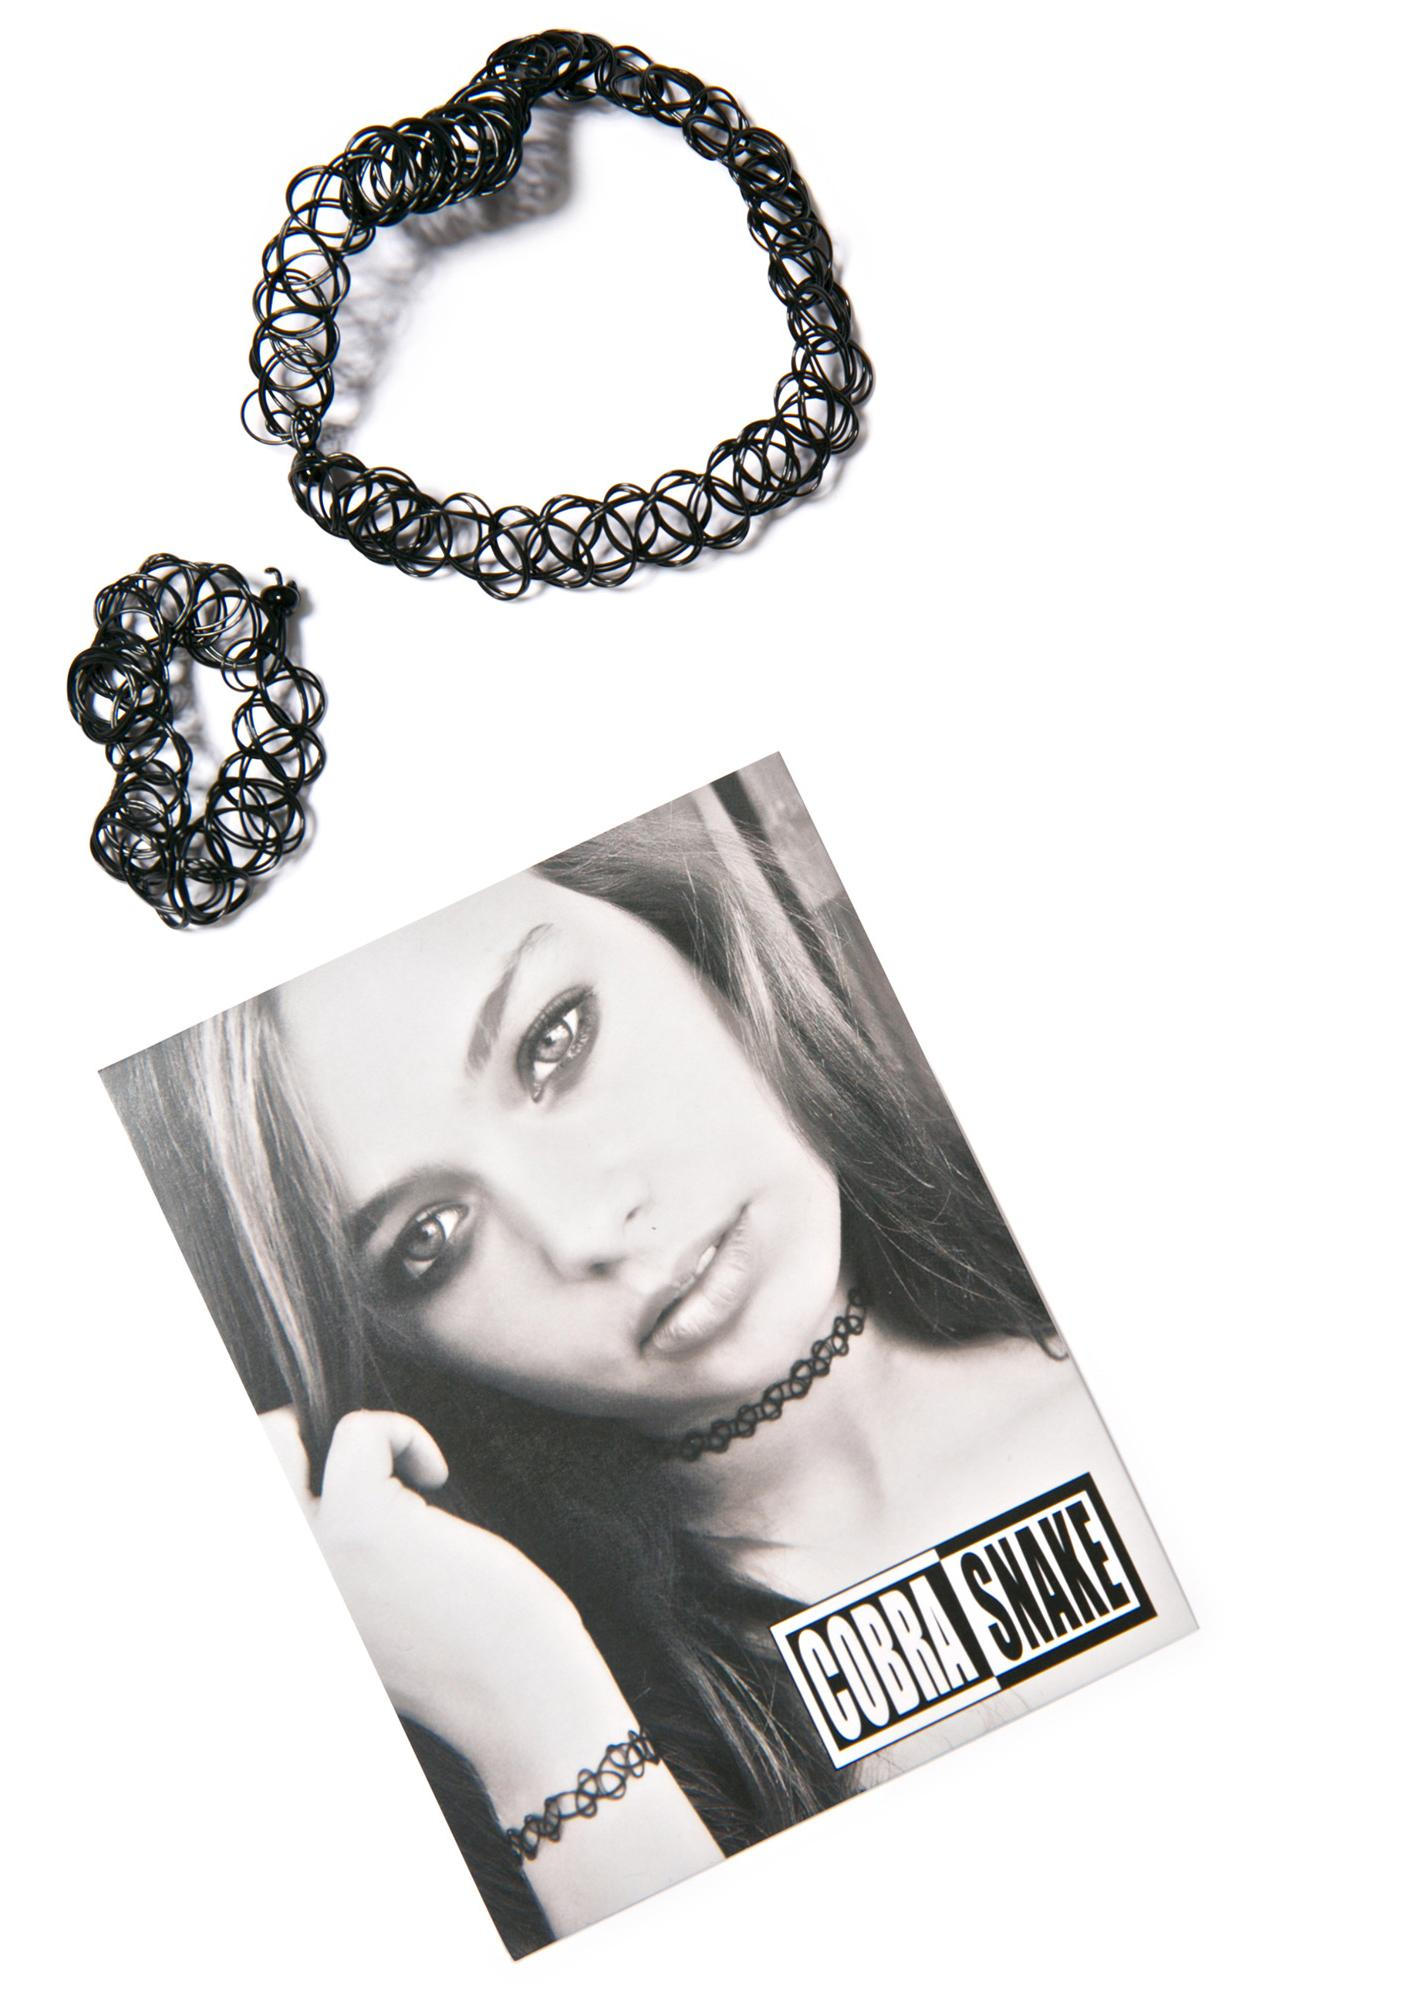 The Cobra Snake Nostalgia Bombin' Tattoo Choker & Bracelet Set